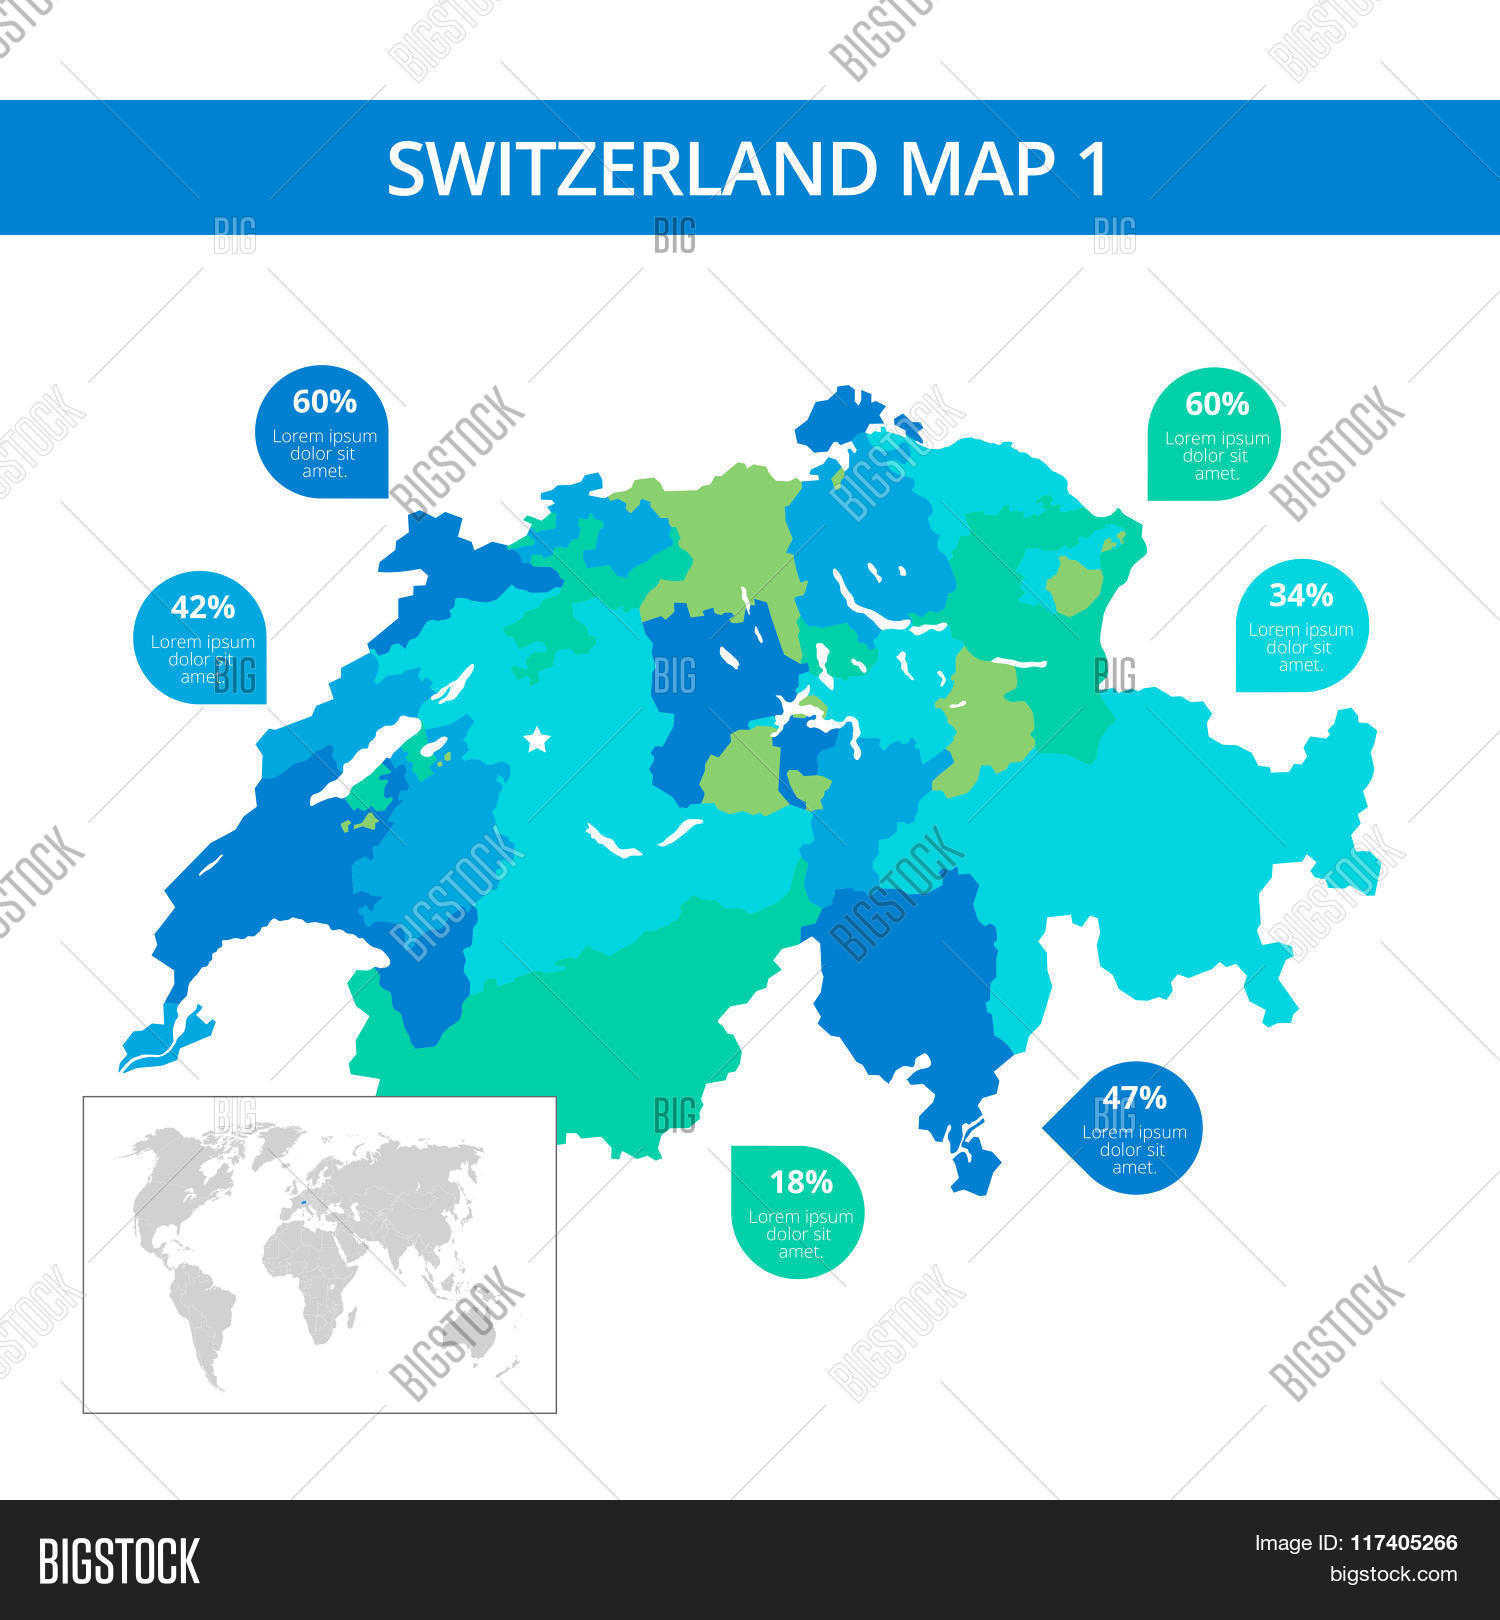 Picture of: Switzerland Map Vector Photo Free Trial Bigstock